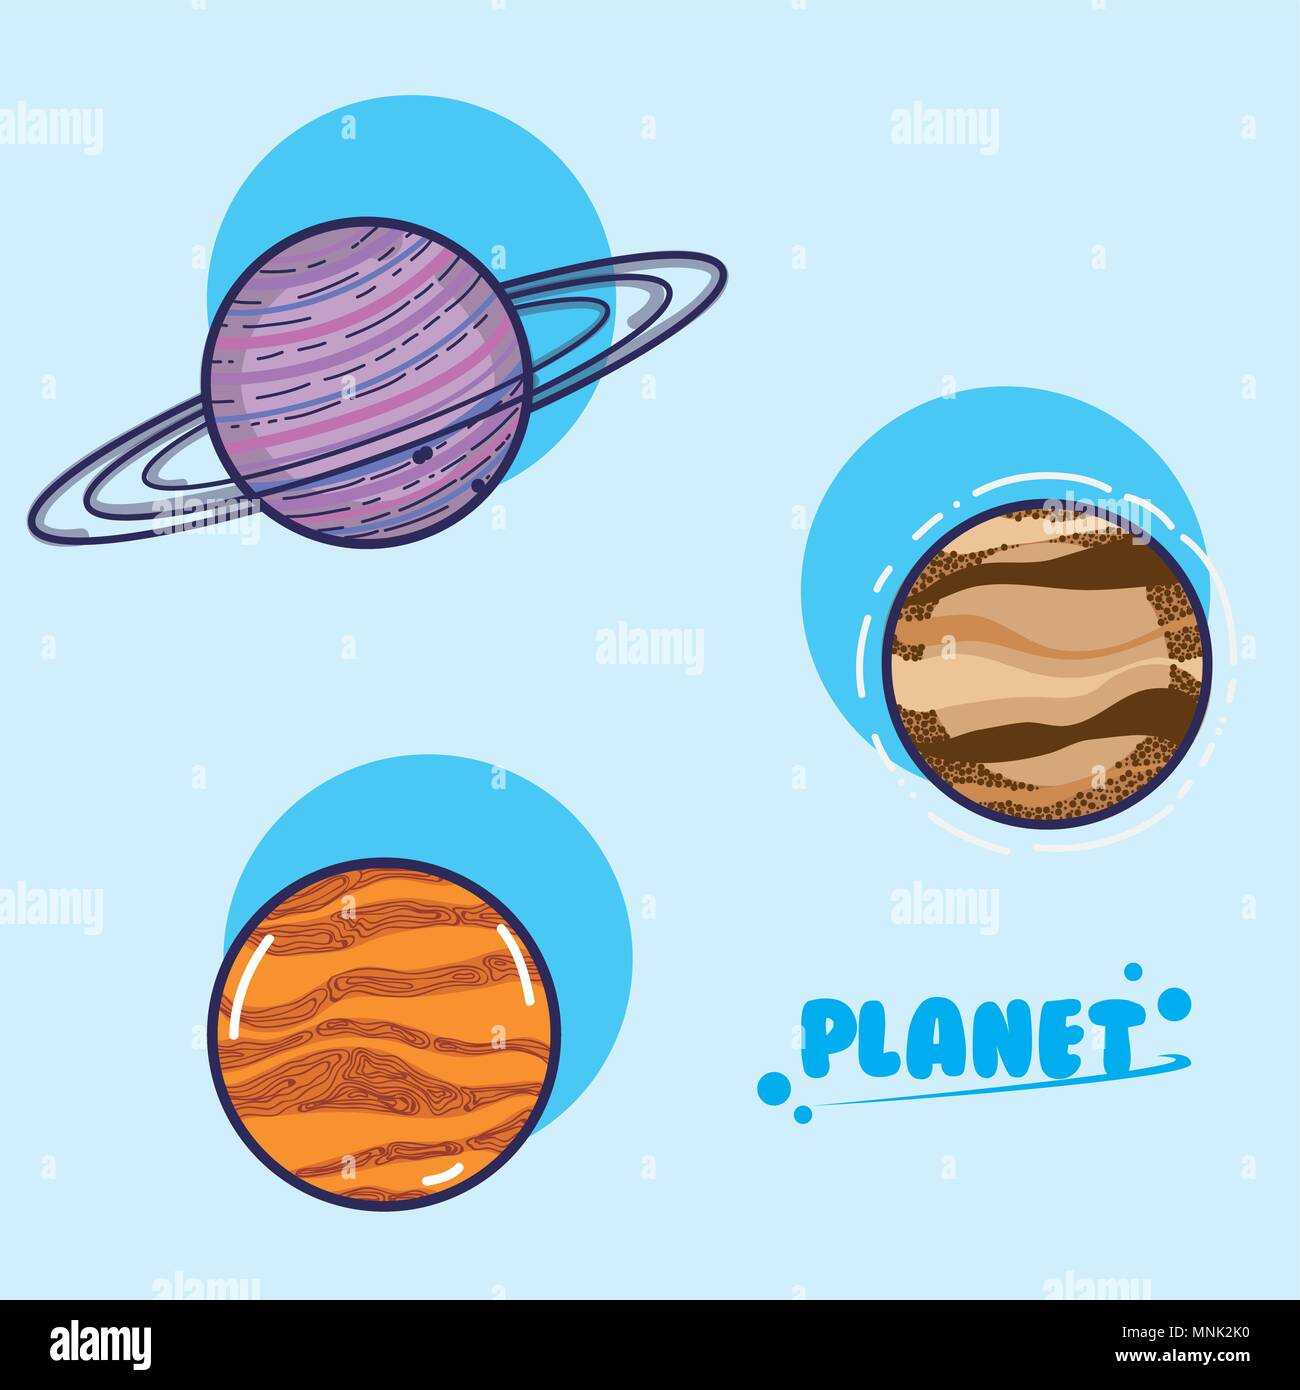 Set of galaxy planets - Stock Image